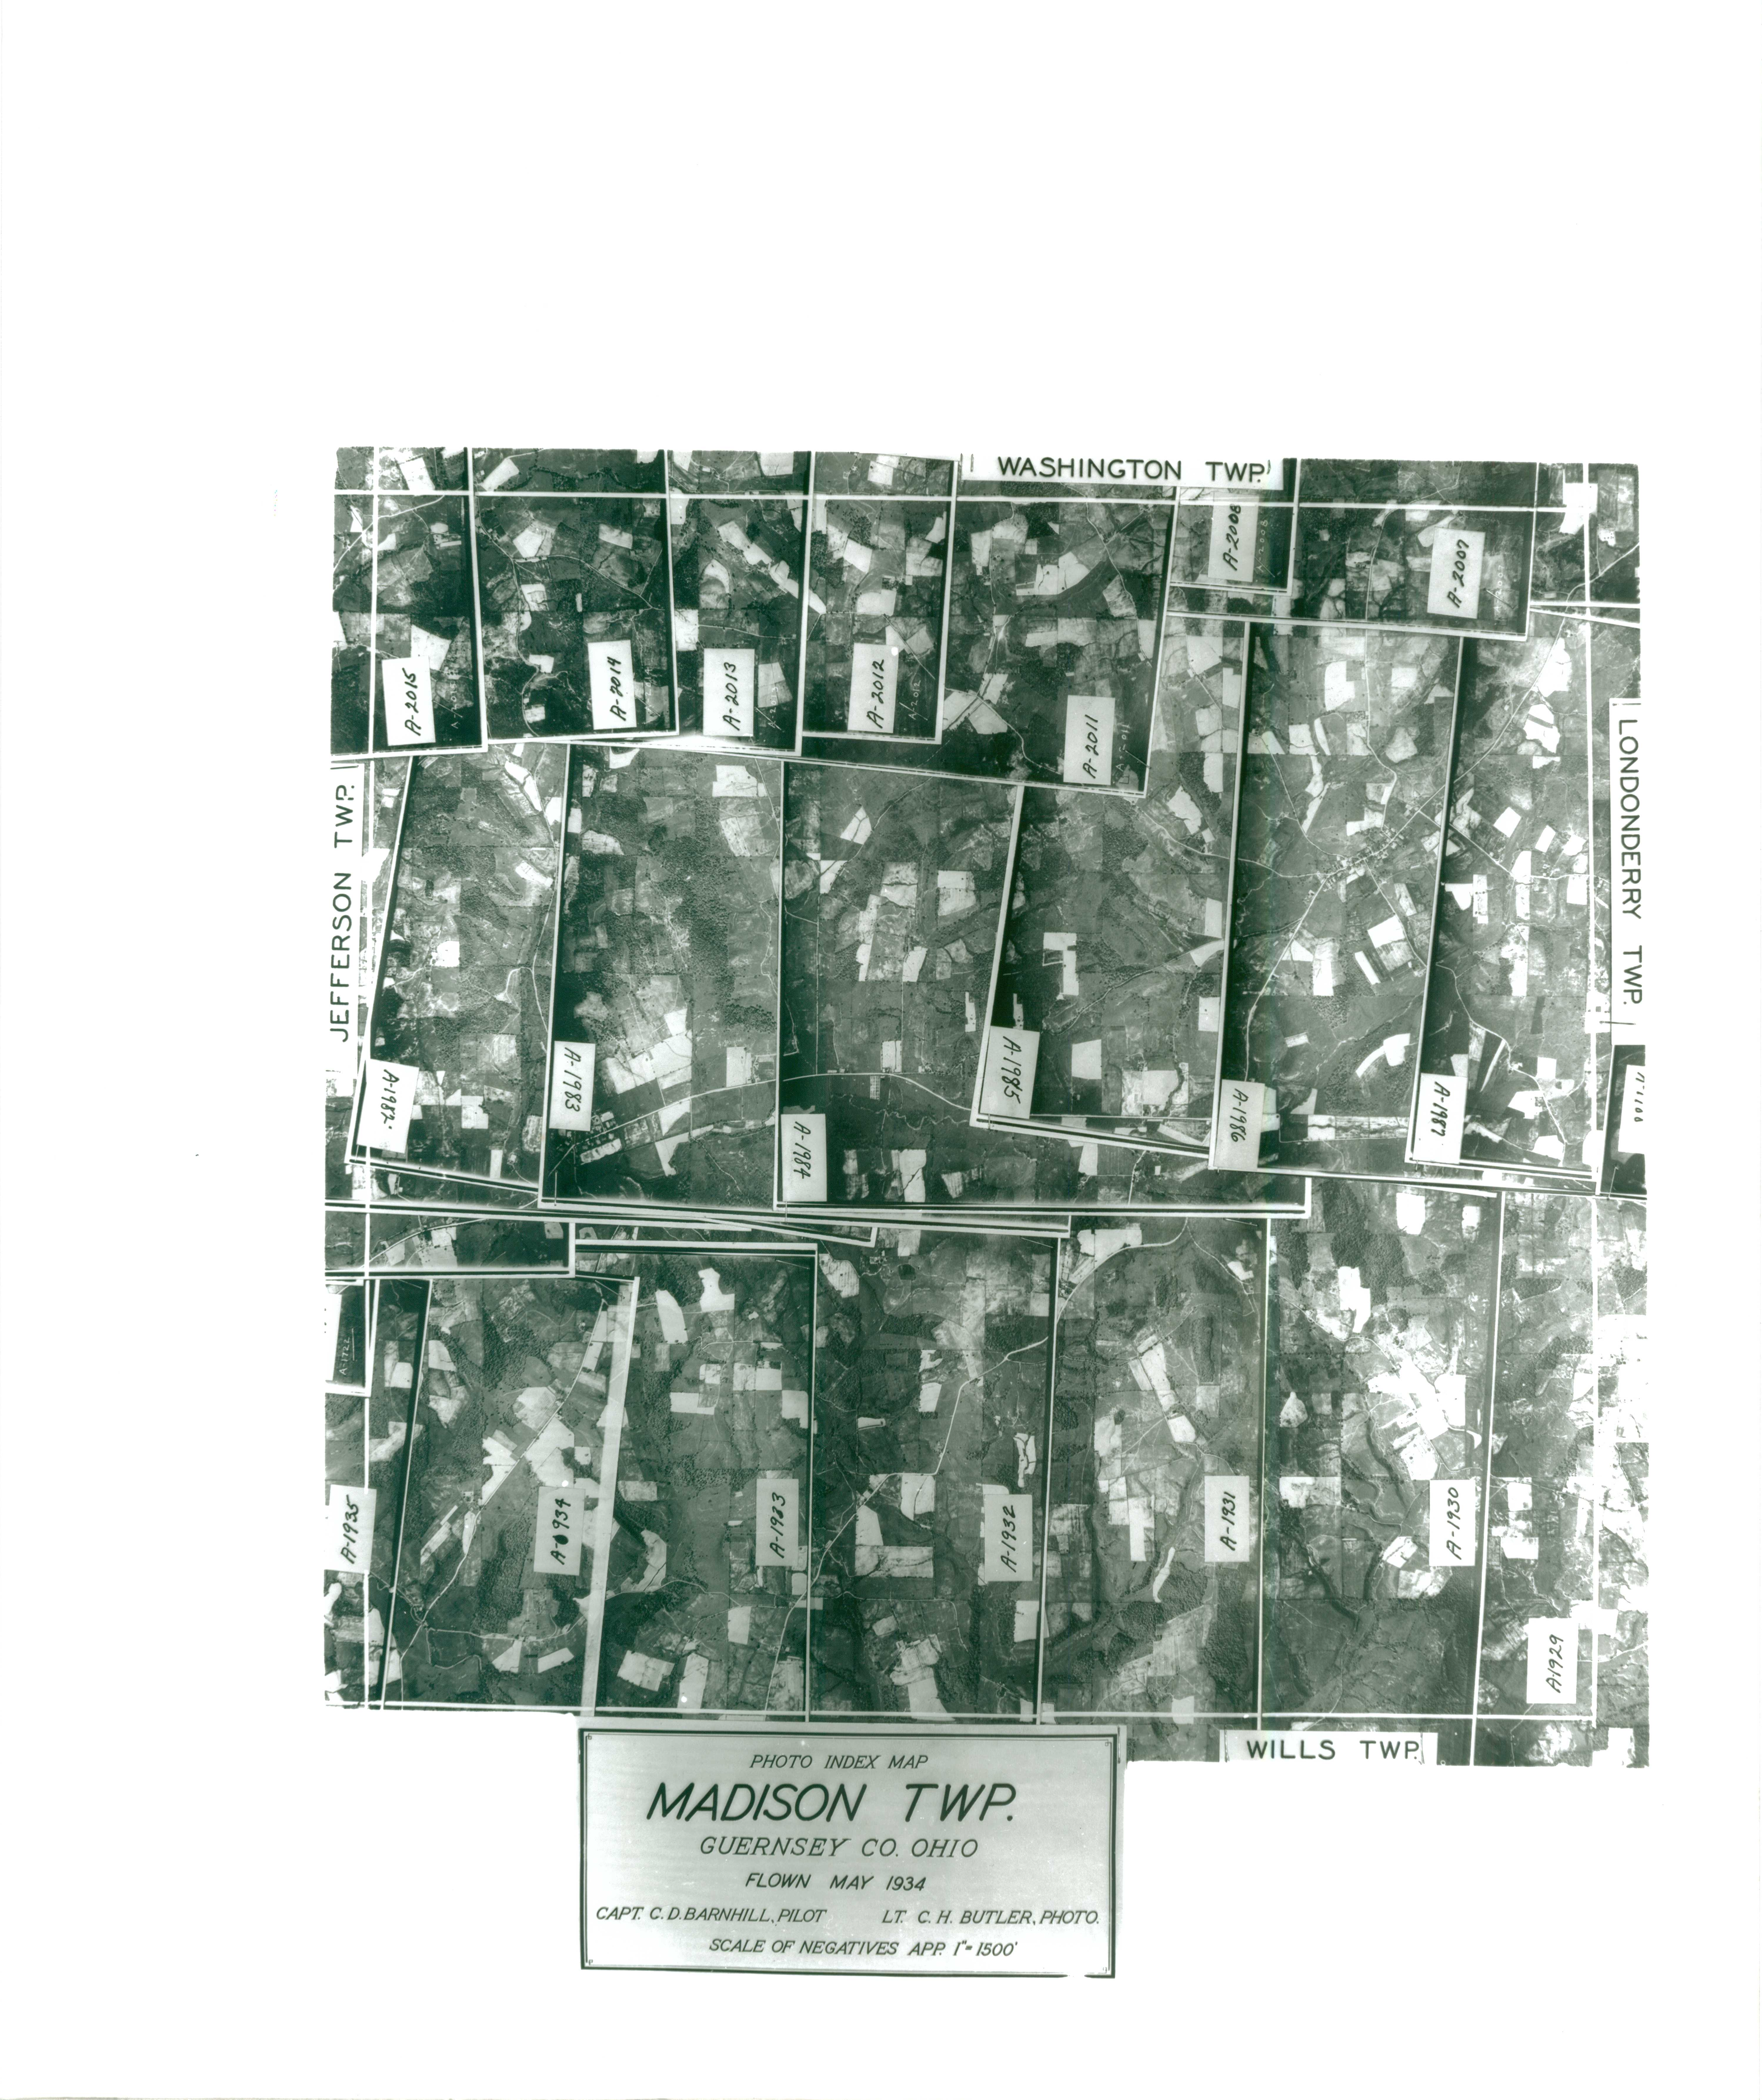 Index to Aerial Photography of Guernsey County, Ohio 8